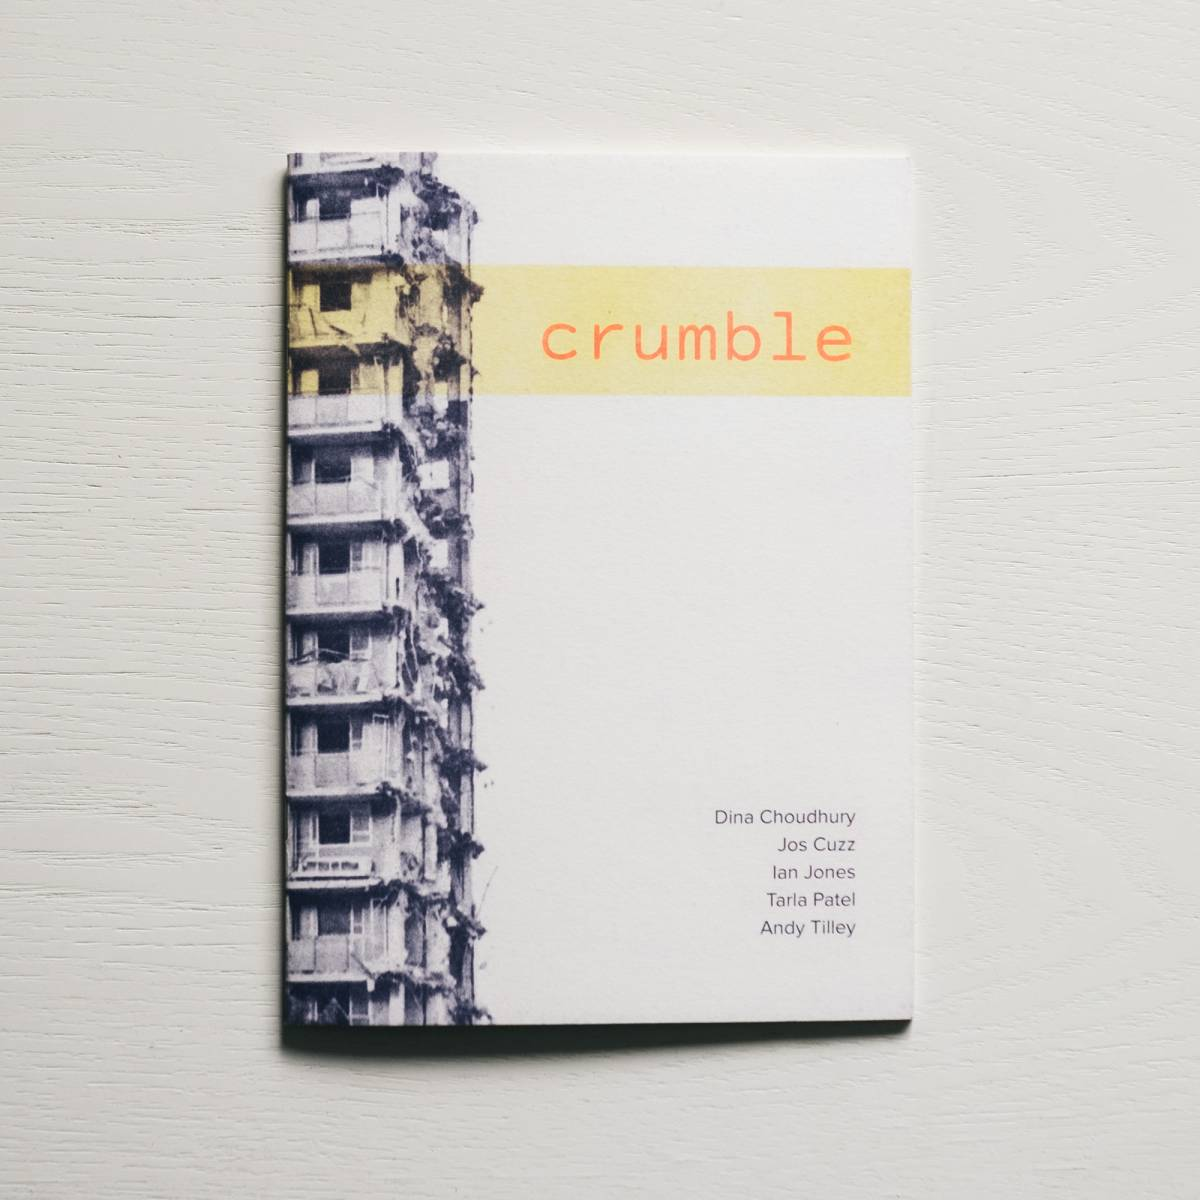 Crumble photobook